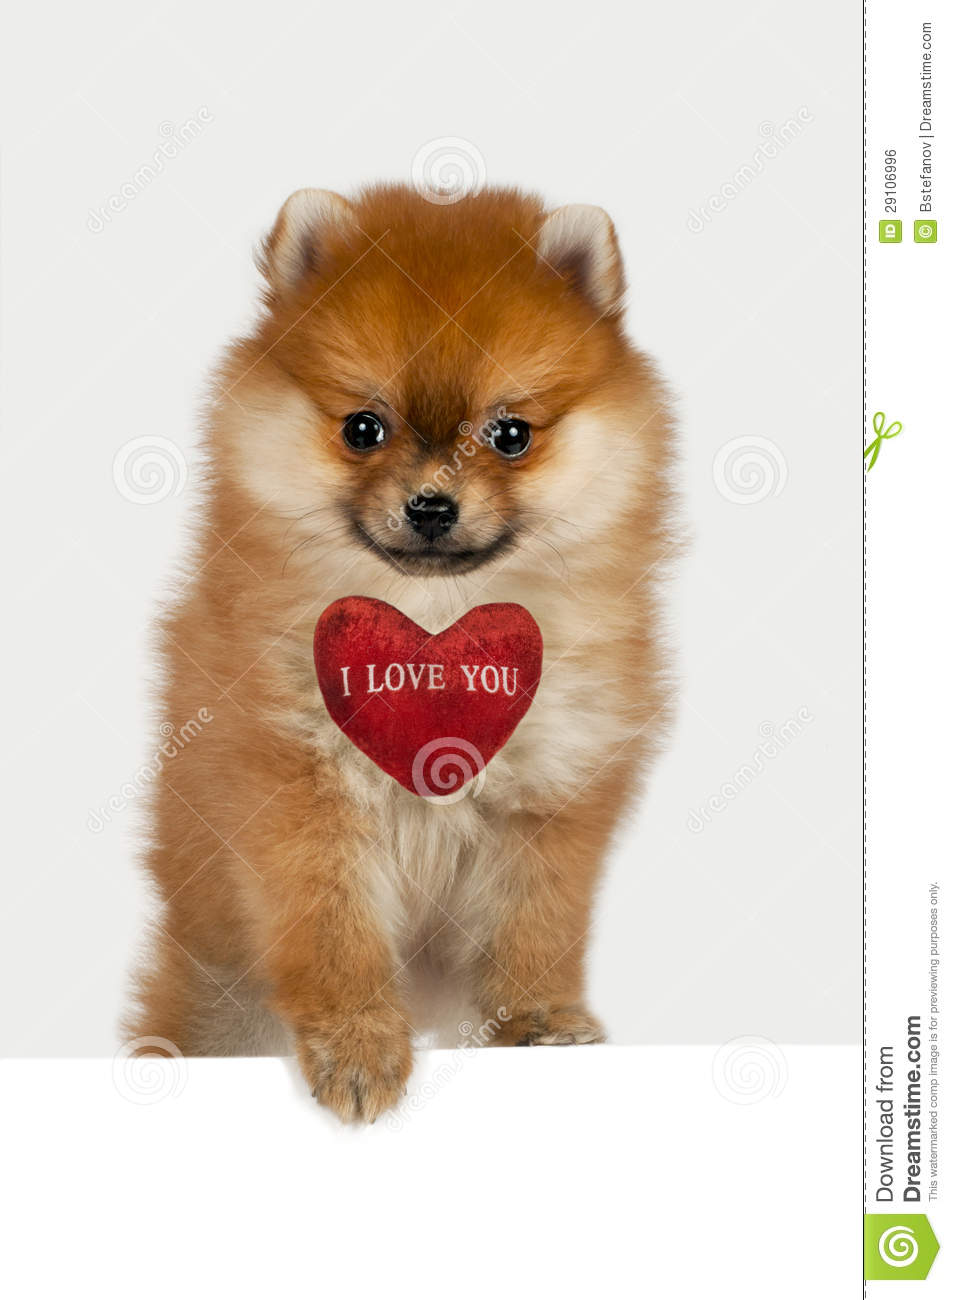 how to get a puppy to love you